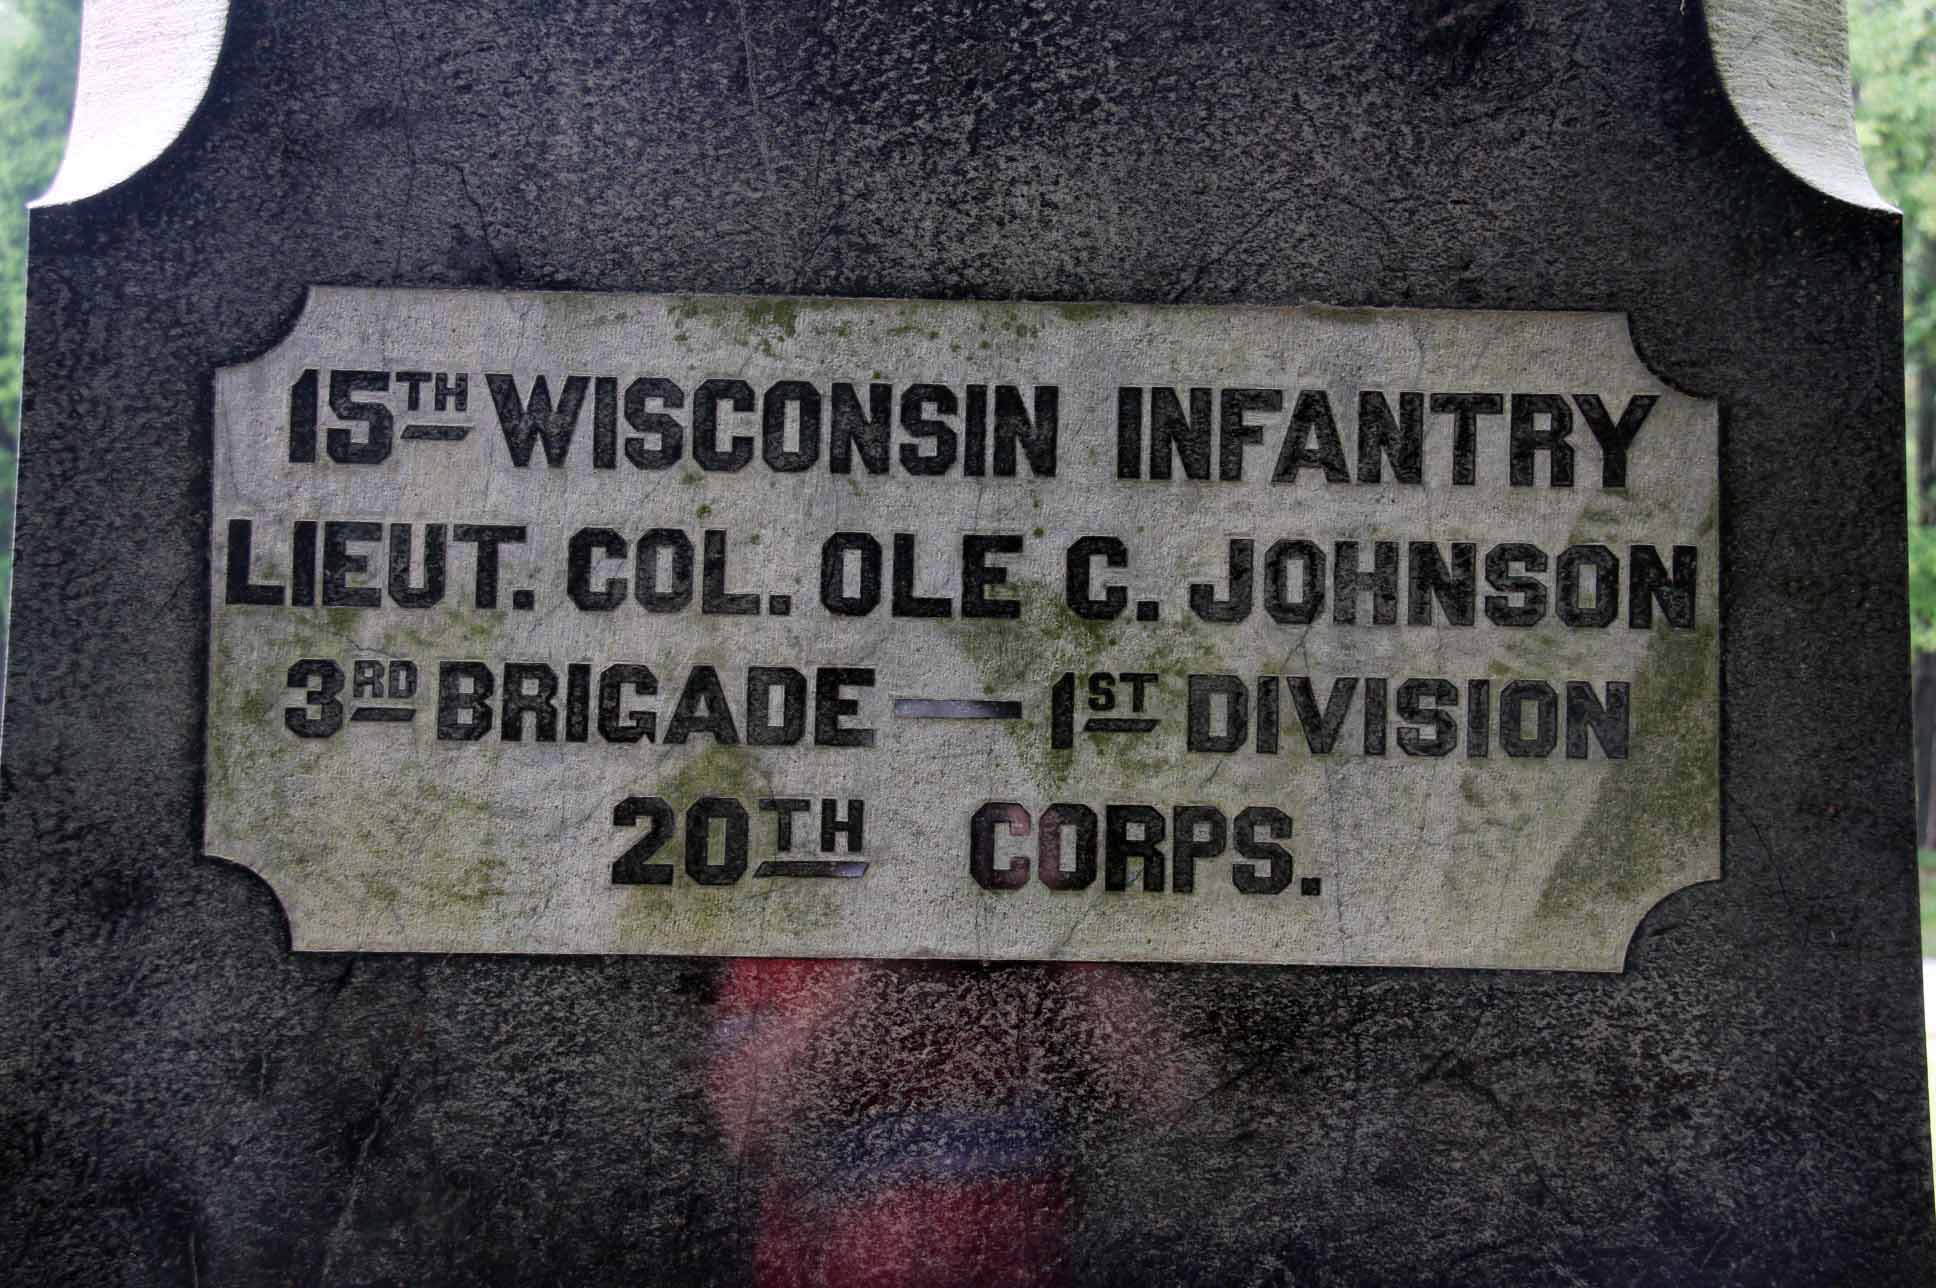 15th Wisconsin Infantry Regiment Monument, click photo to enlarge.